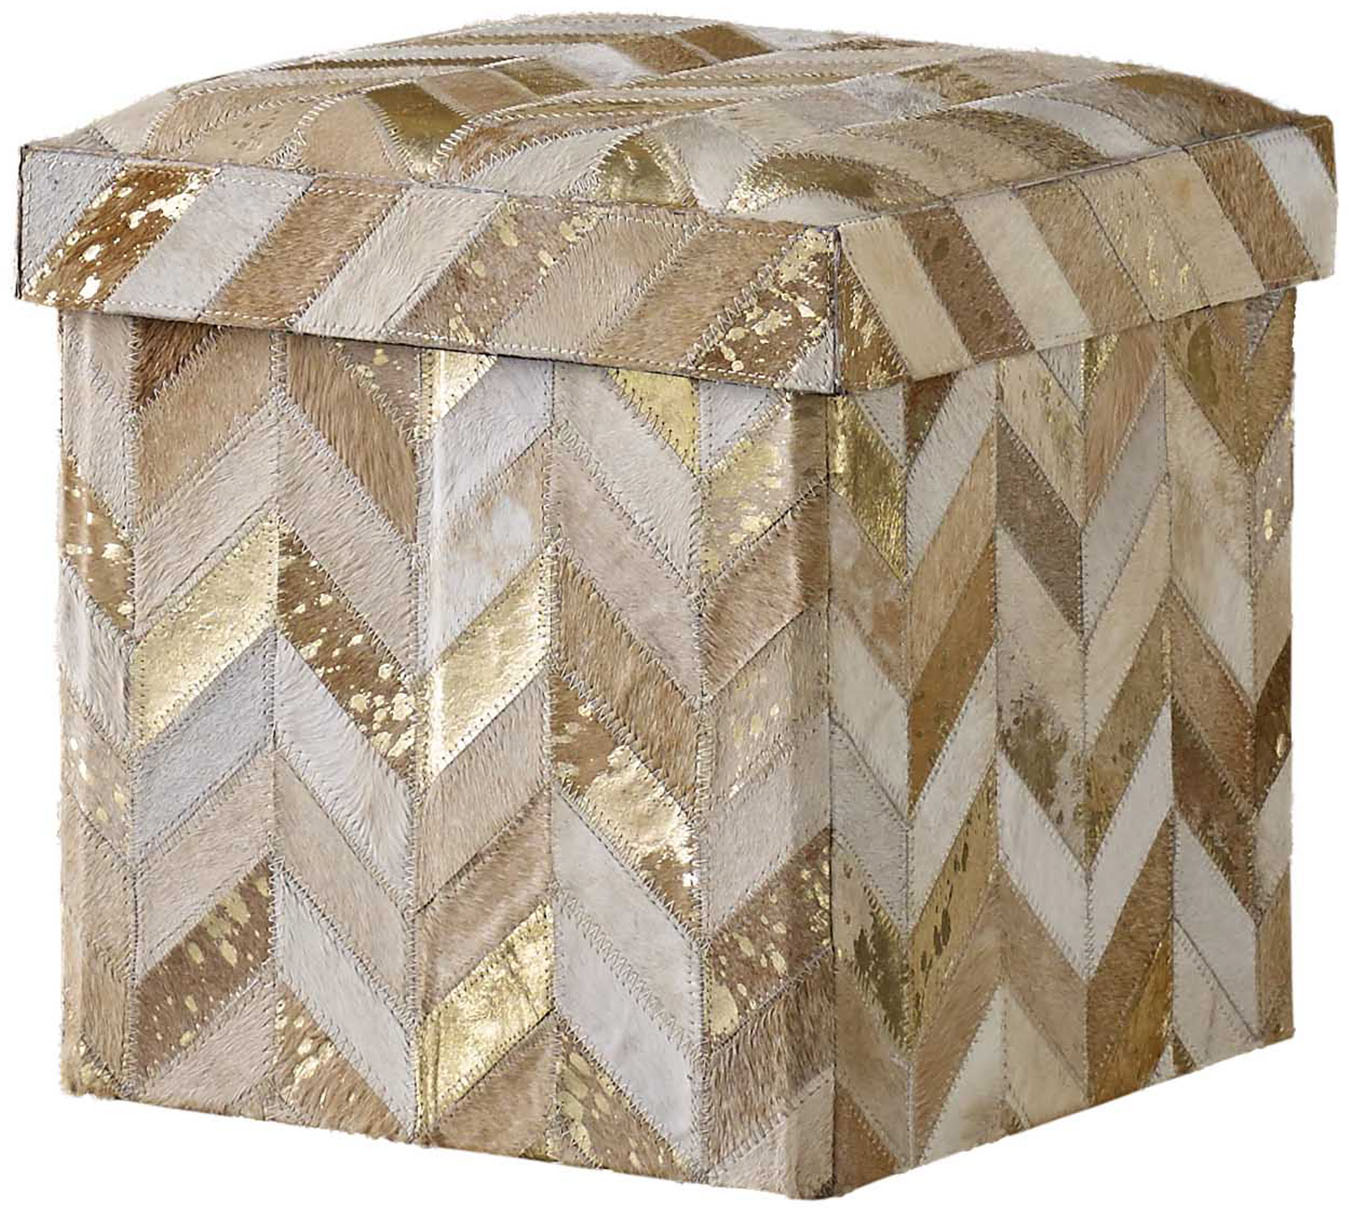 Wondrous Recherche Storage Stool Chevron Beigegold Kravet Ocoug Best Dining Table And Chair Ideas Images Ocougorg